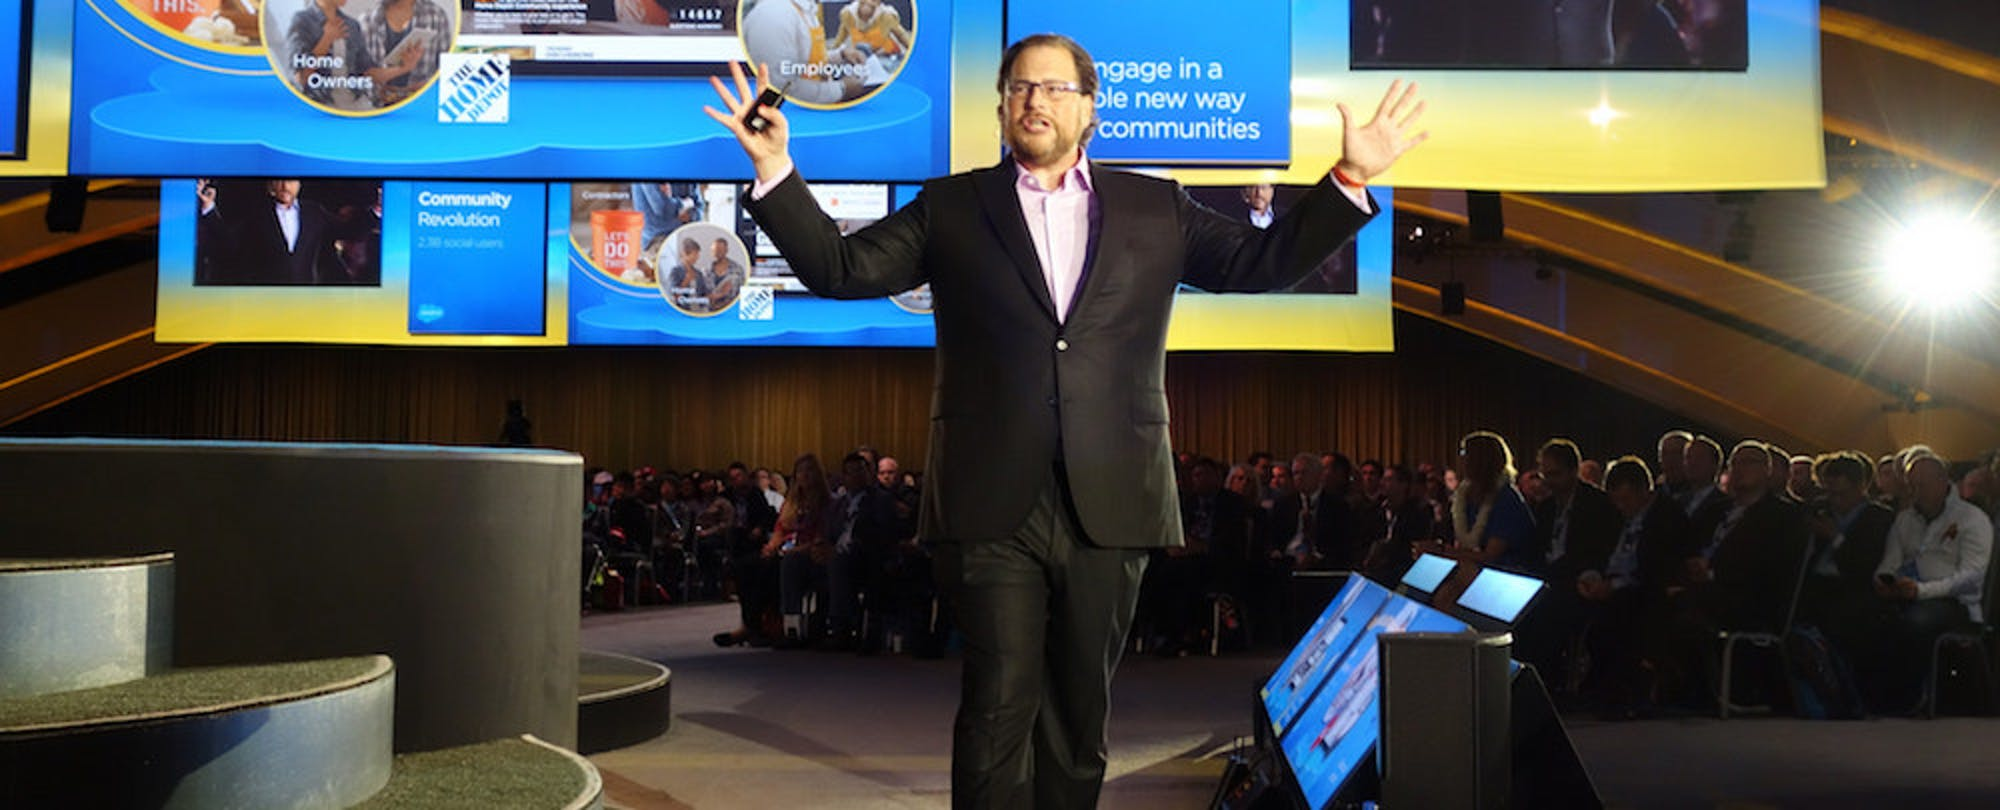 Salesforce Donates $8.5M to Computer Science Education